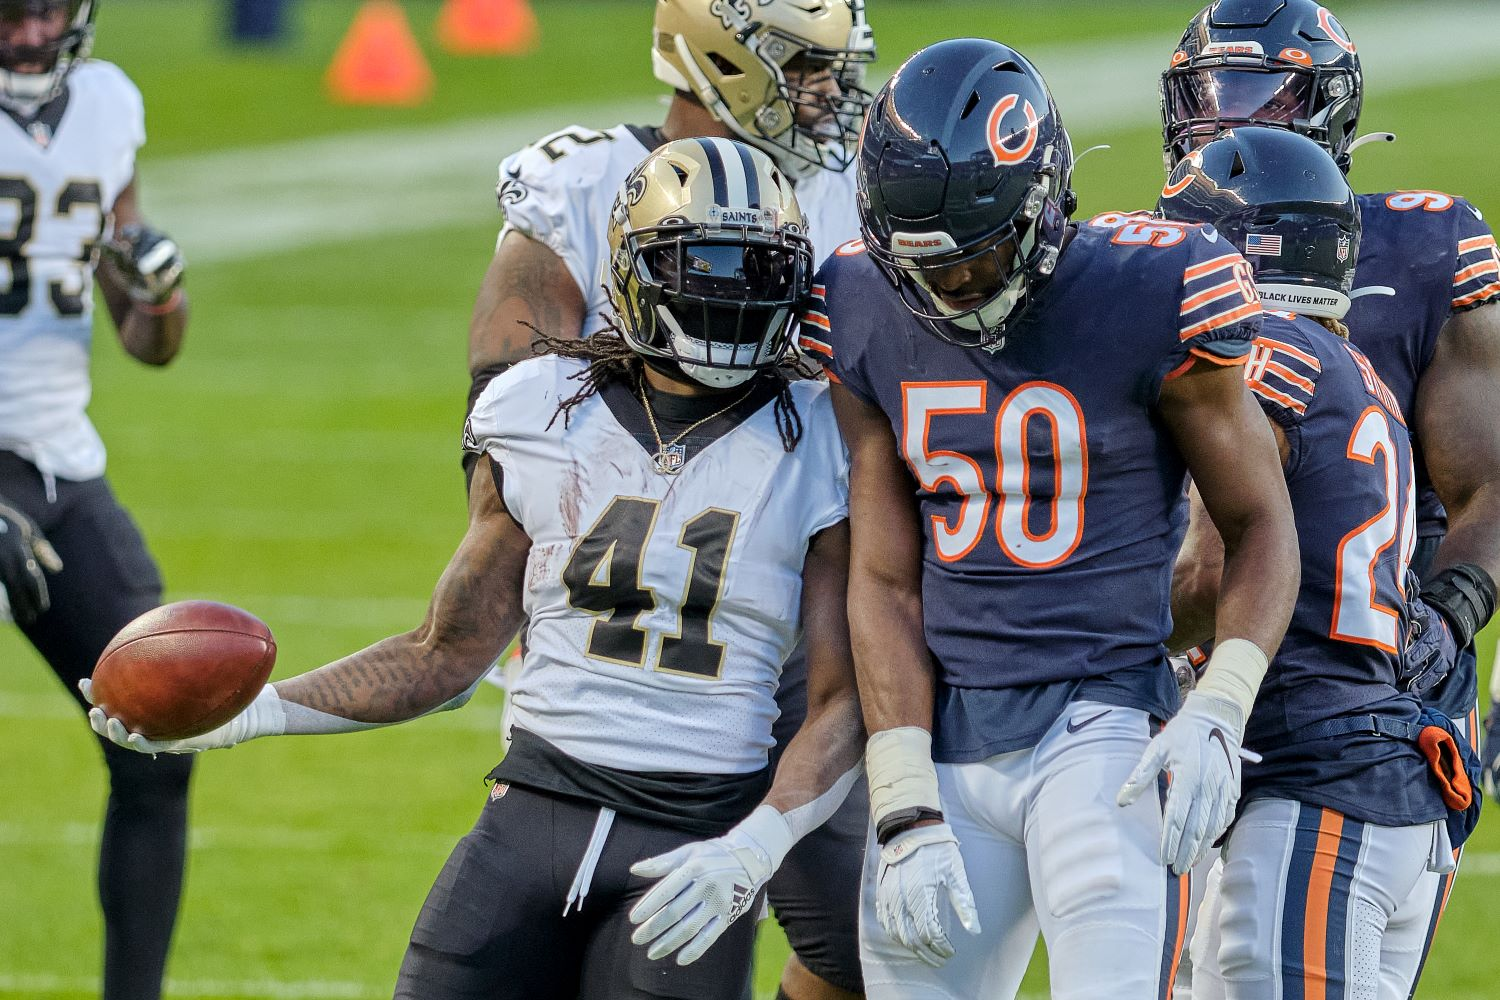 Alvin Kamara only needed three words to send a chilling warning to the Chicago Bears. Will the Saints emerge victorious on Sunday?